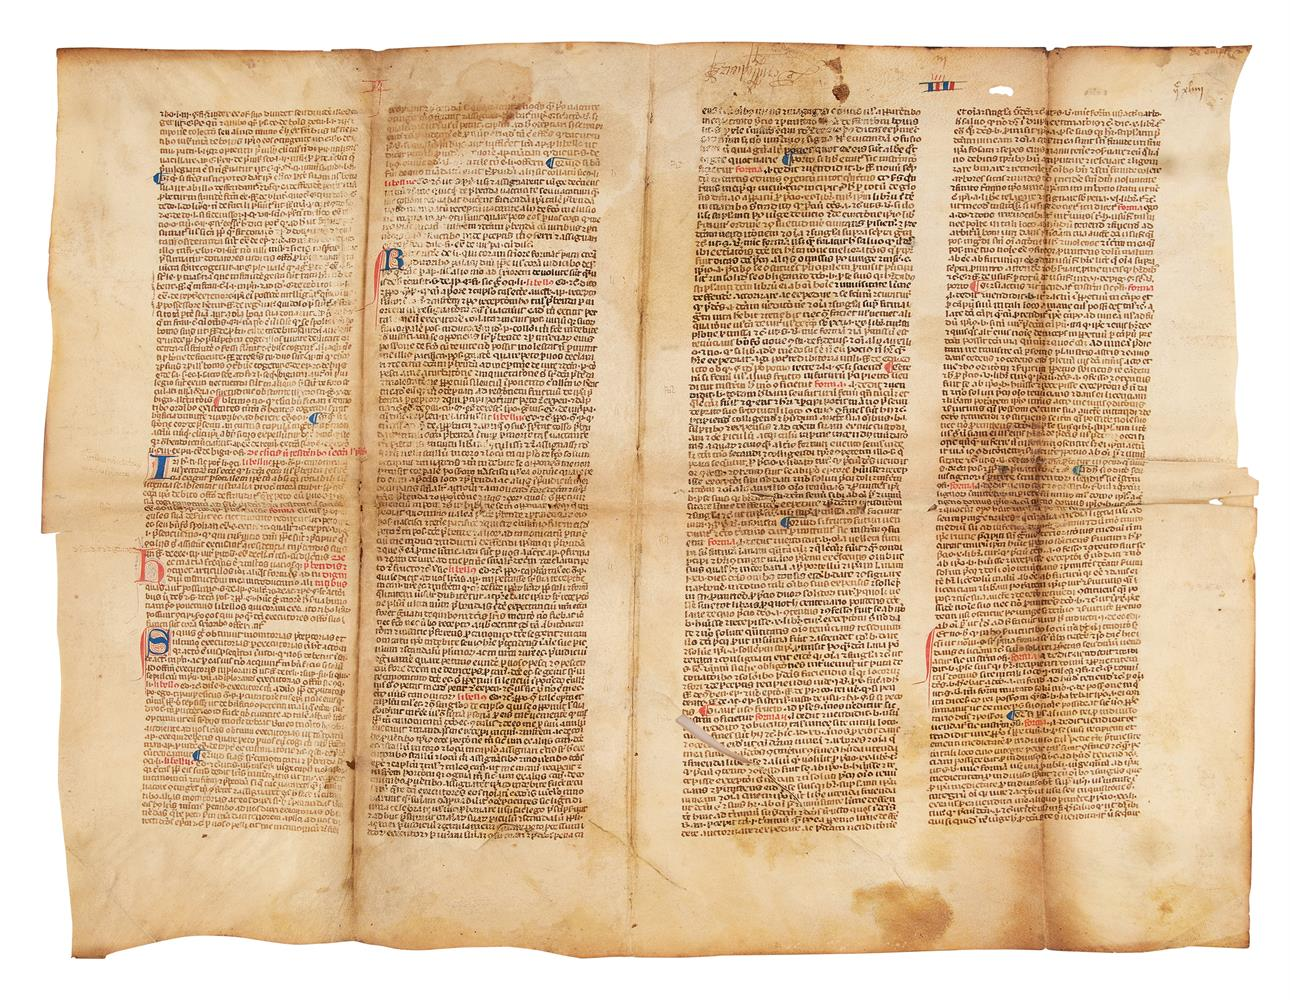 Collection of leaves from legal manuscripts, in Latin, on parchment [thirteenth to fourteenth cen - Image 5 of 8